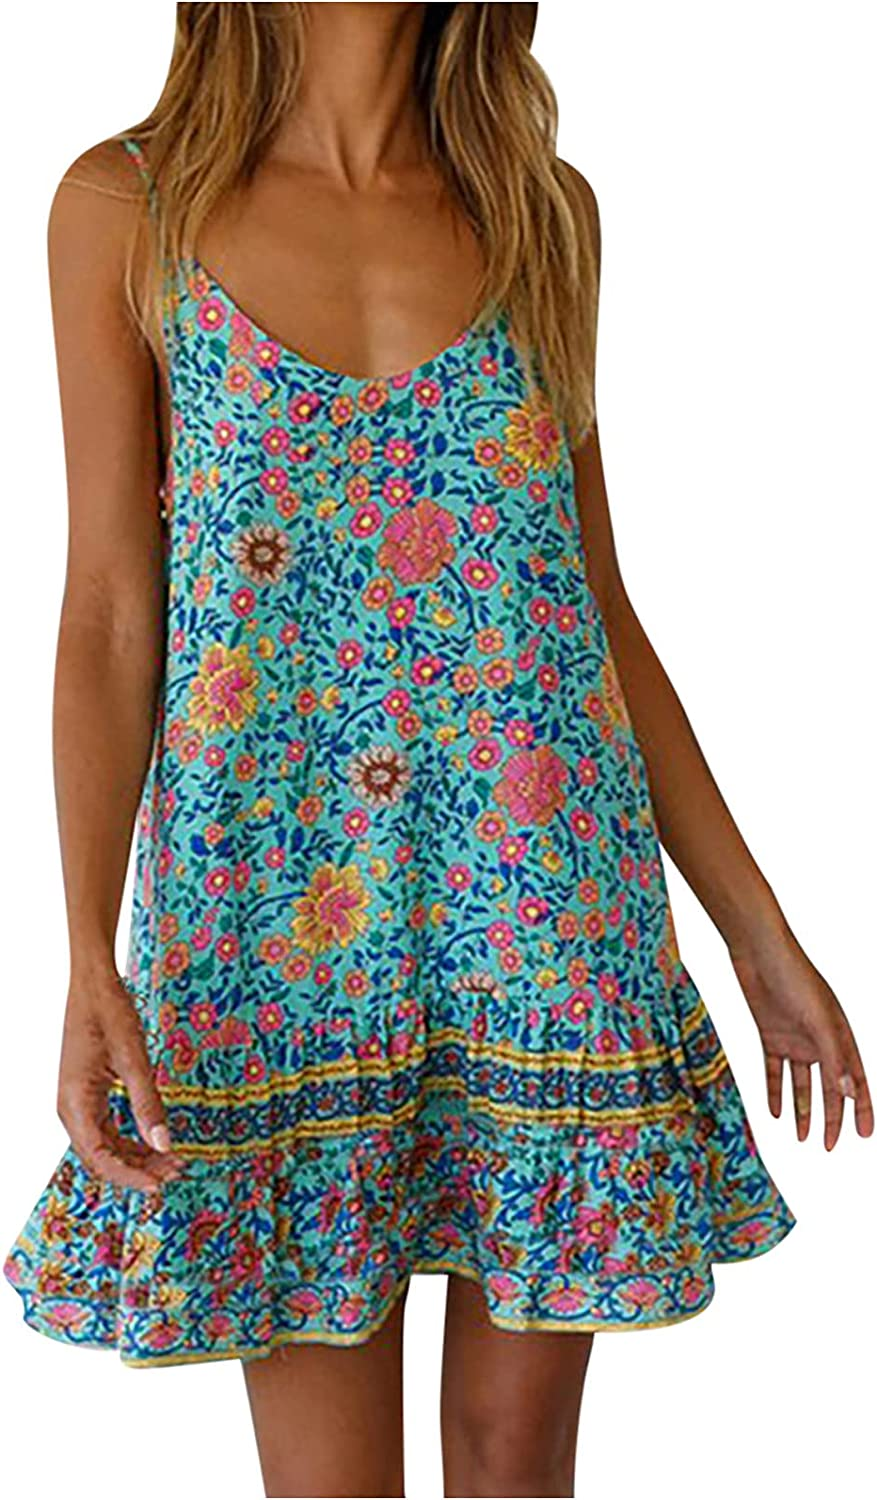 Yanvan Summer Dresses for Store Discount is also underway Women Short F Boho Party Sleeve Beach